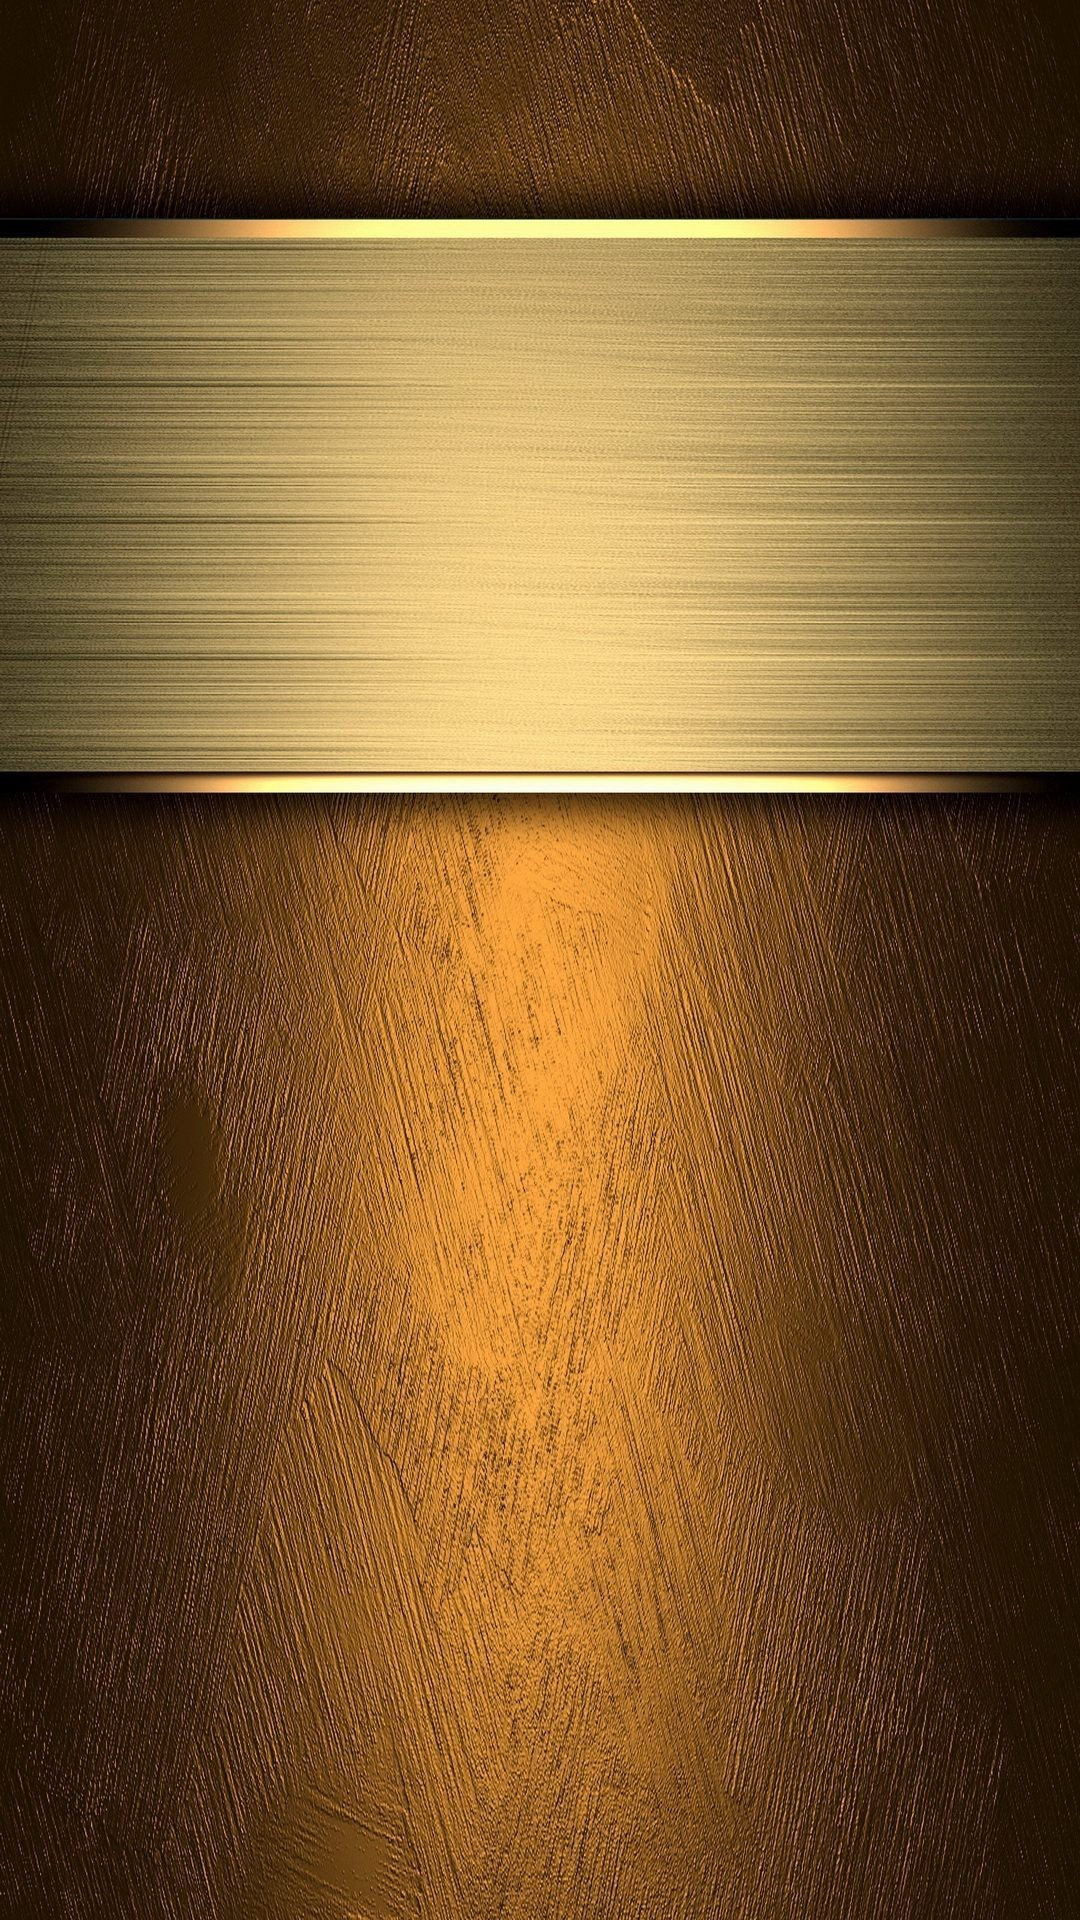 Elegant Gold iPhone 6 Plus Wallpapers – abstract, background iPhone 6 .